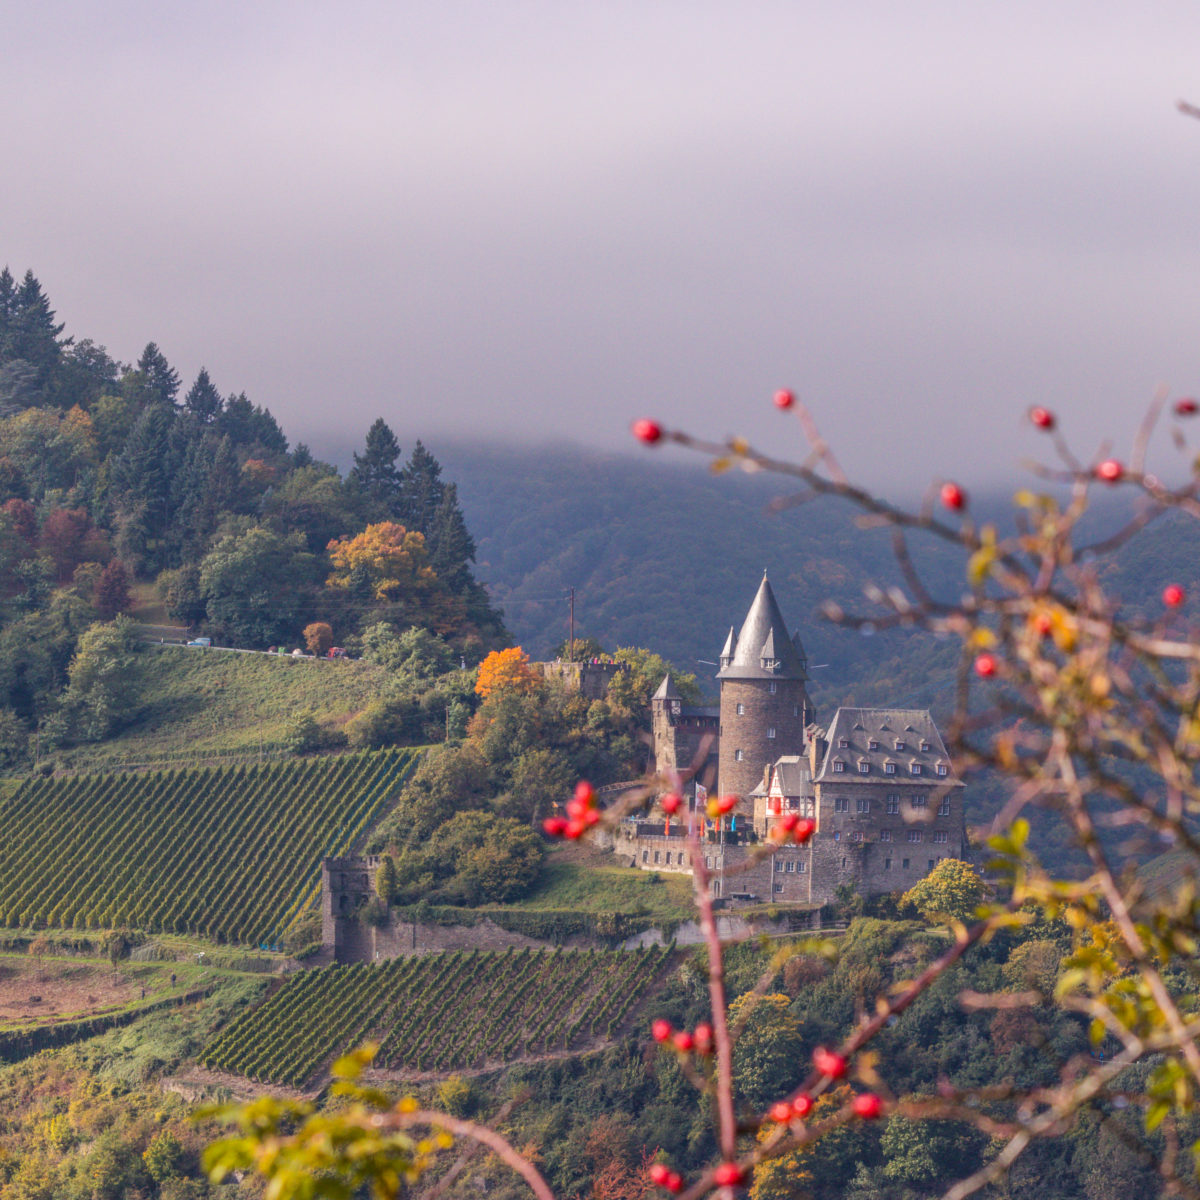 The Stahleck Castle looks like from a fairy tale! Shot from the opposite side of the Rhine Valley (Rheingau)